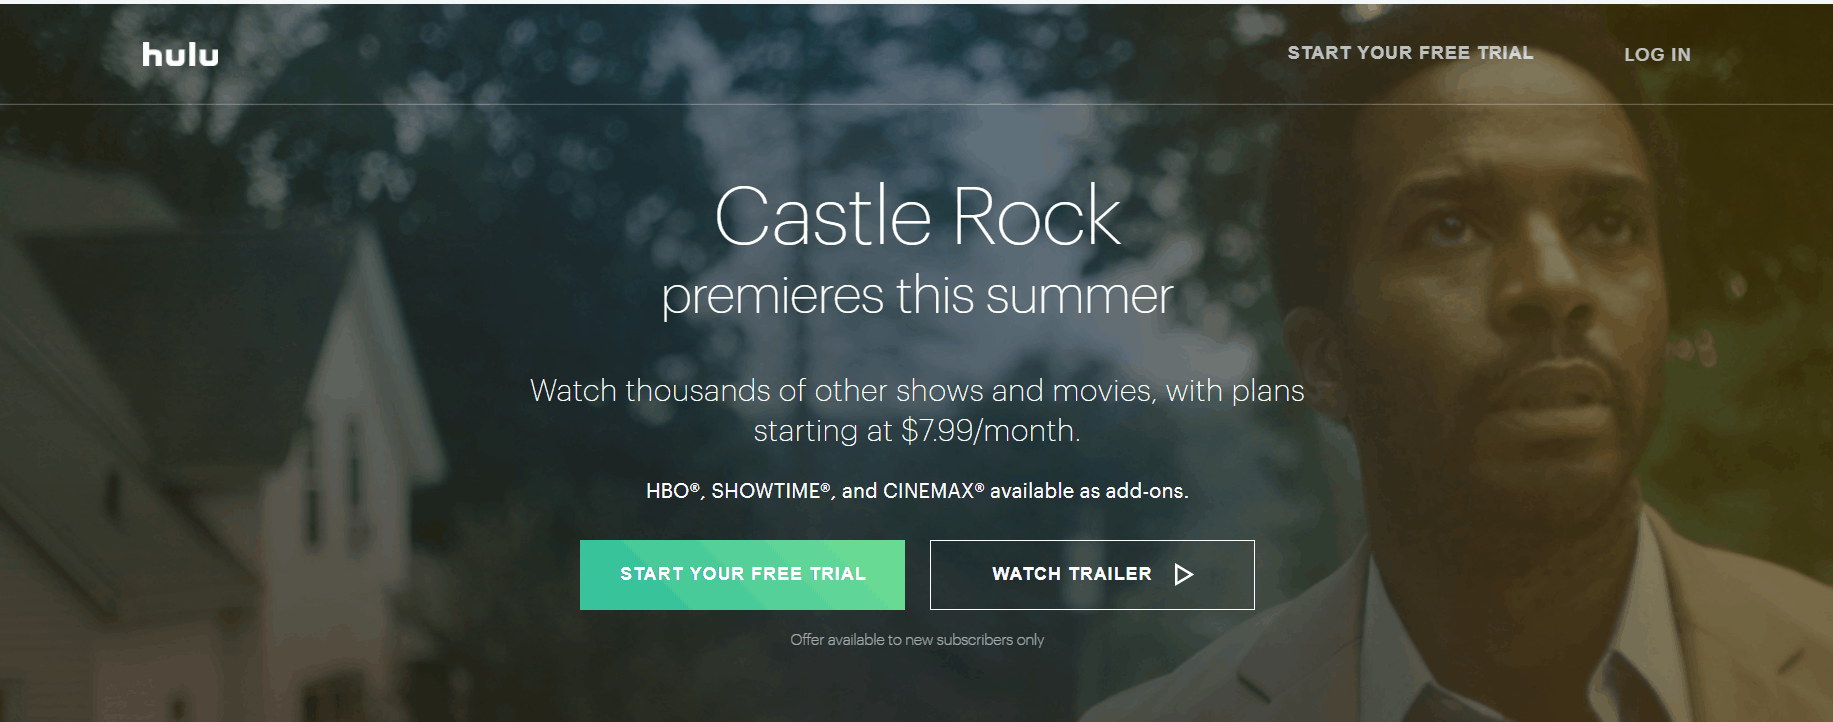 Hulu use Ruby on Rails